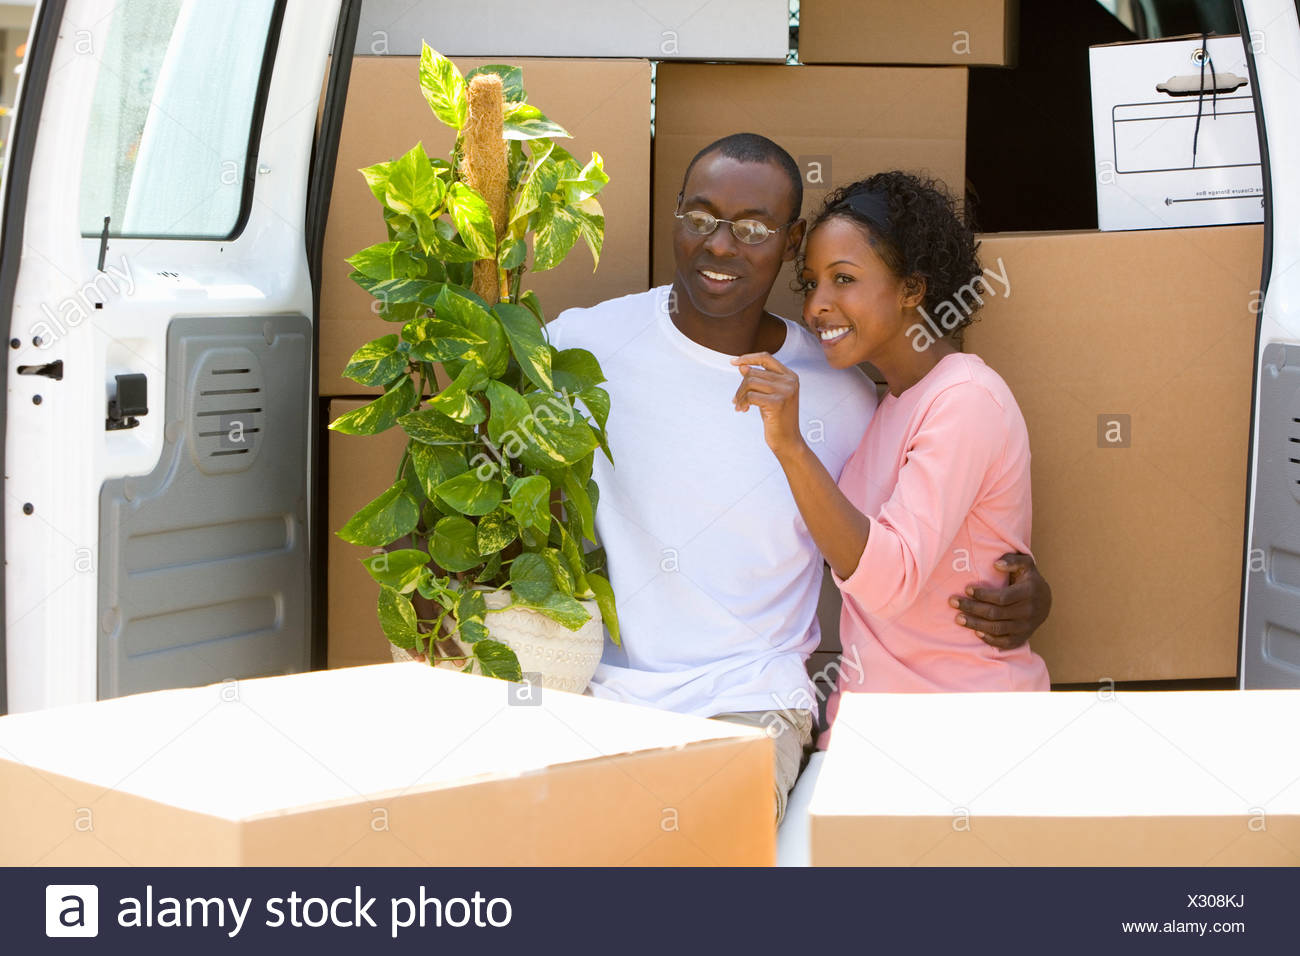 Couple unloading boxes from van Stock Photo